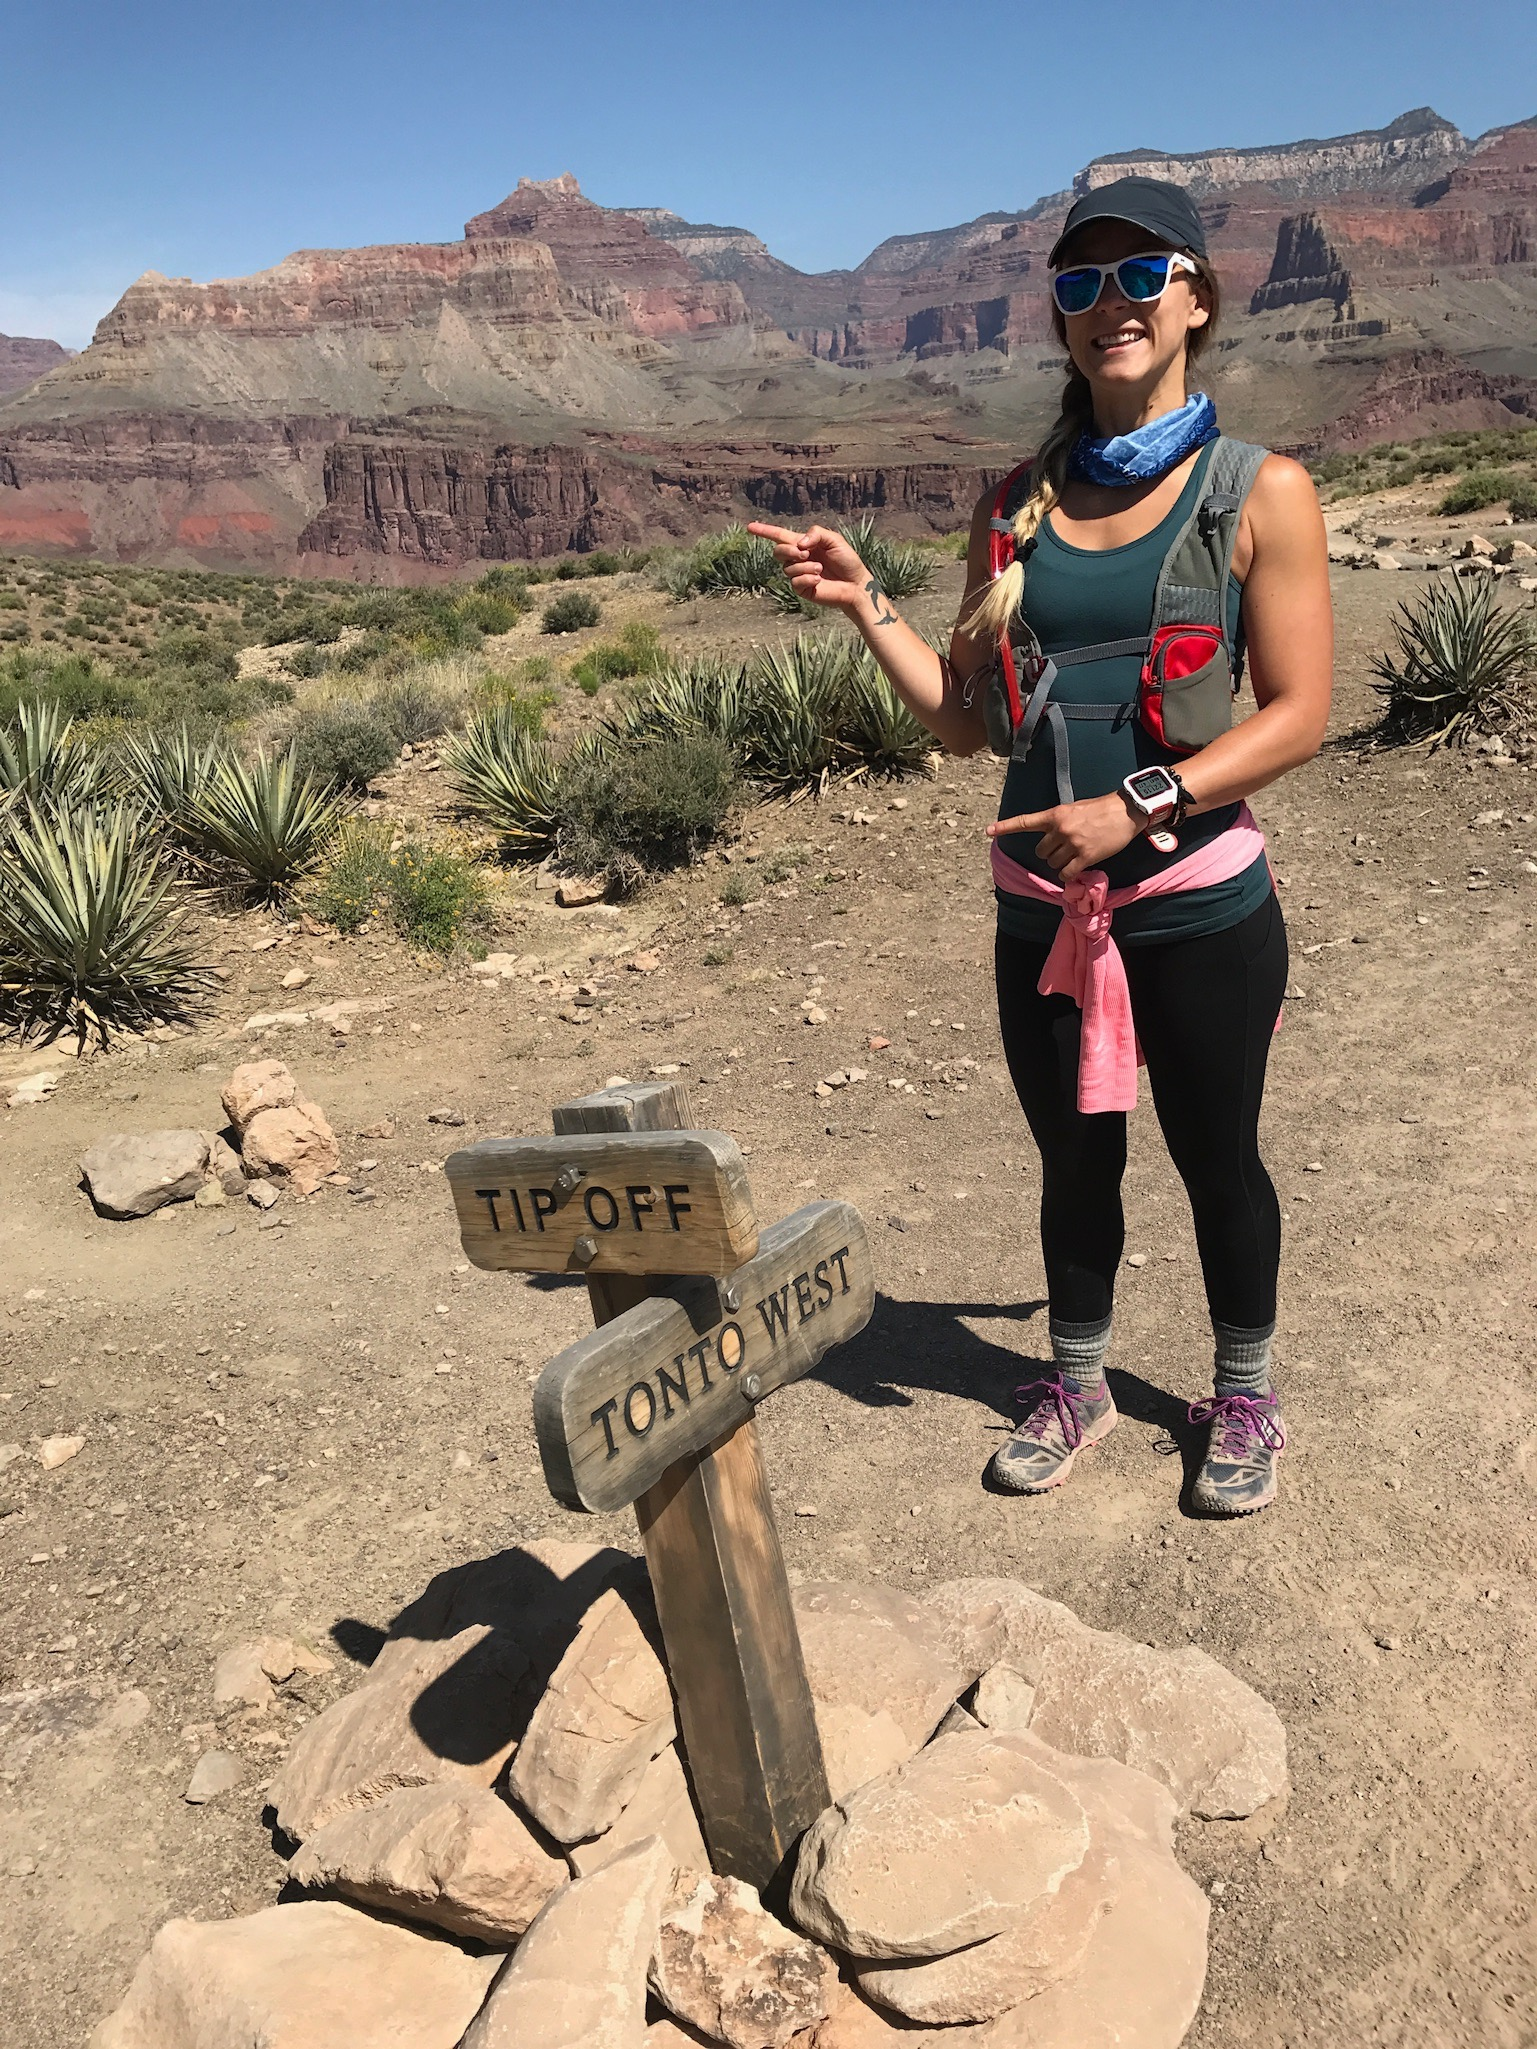 Tip Off @ Tonto Trail @ South Kaibab Trail, South Rim, Grand Canyon